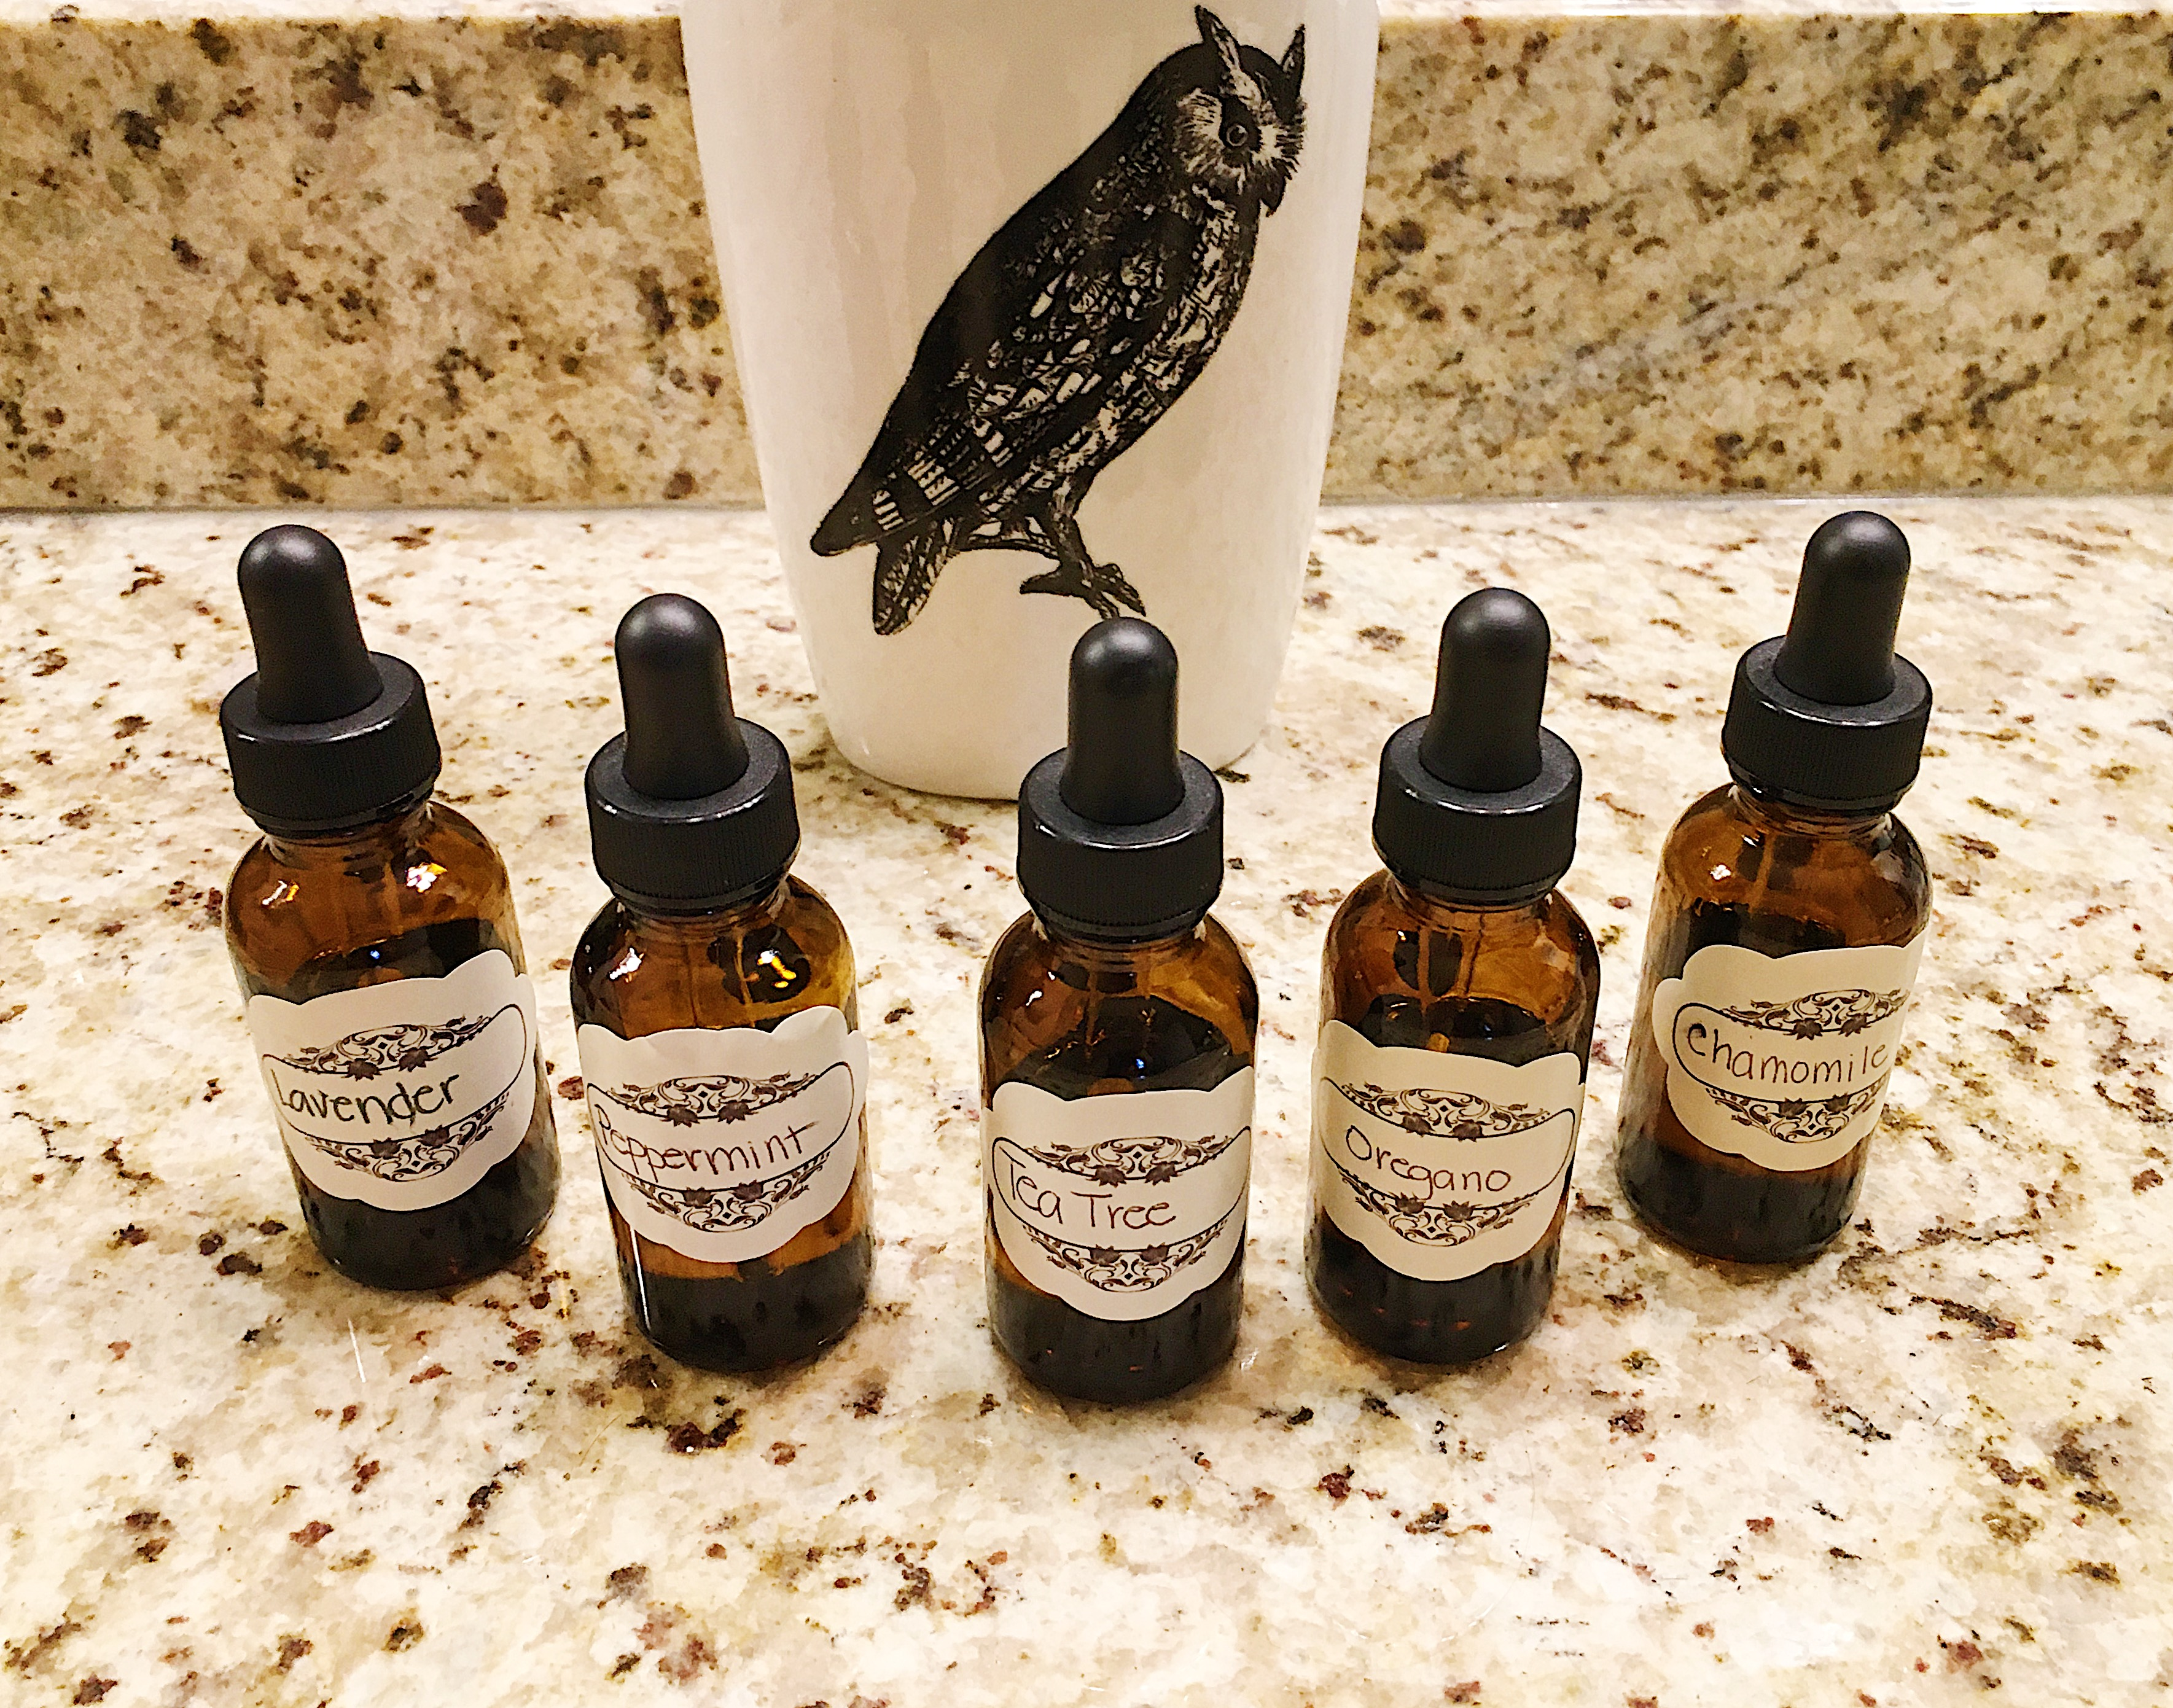 A lineup of the diluted essential oils I made in glass bottles with labels